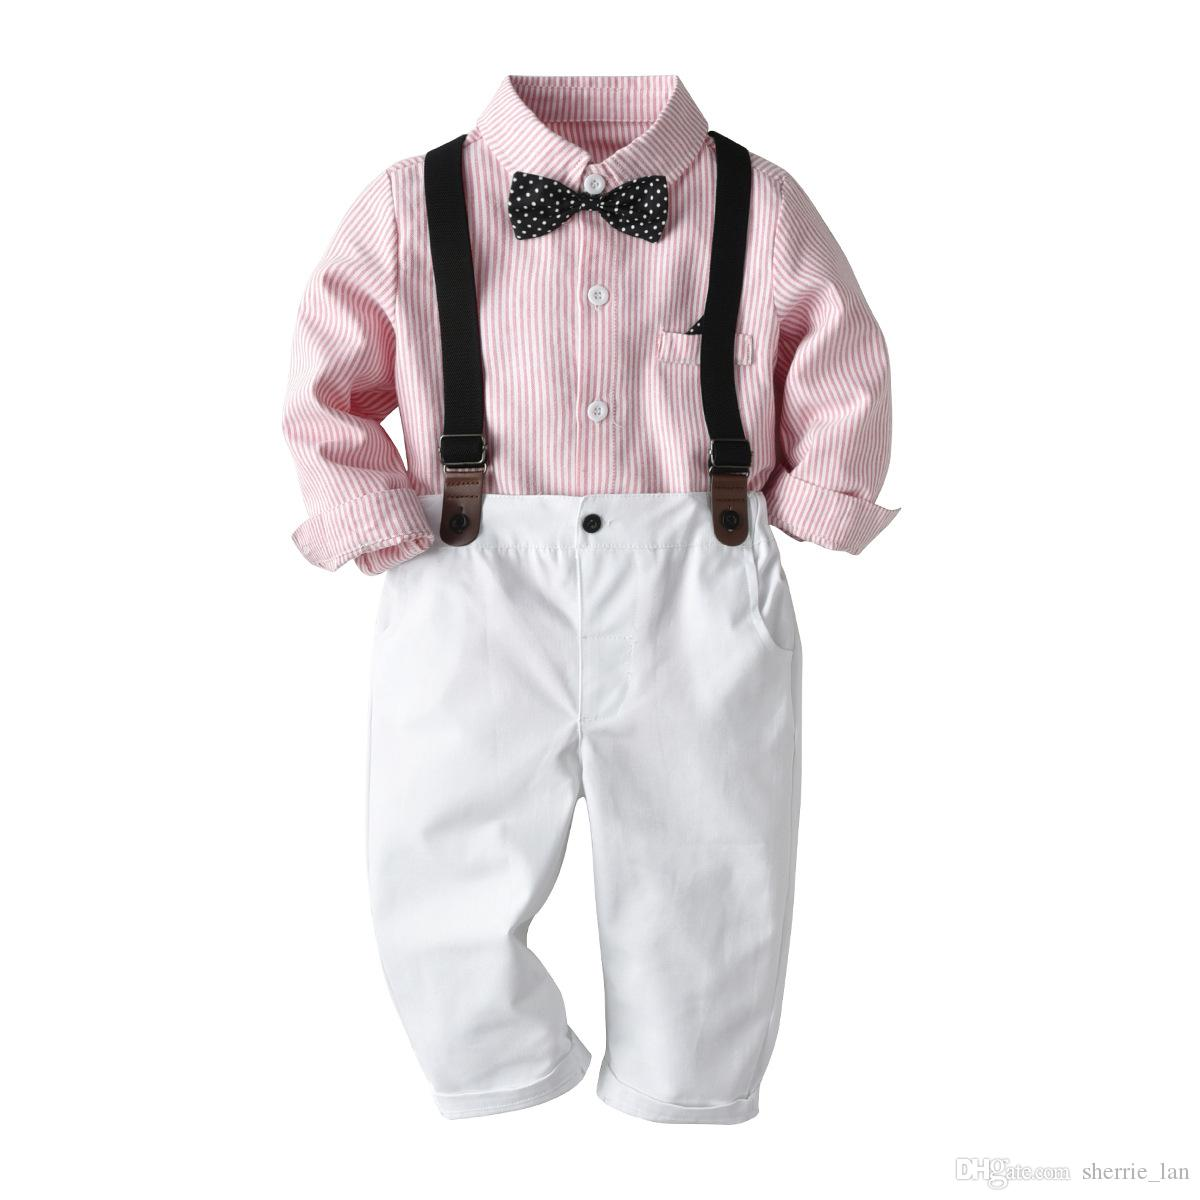 Baby Boys Clothes Sets,Infant Baby Boys Gentleman Bow Tie T-Shirt Tops+Shorts Overalls Clothes Outfits for 0-2 Years Old Kids Boys Outfits Summer Cotton Set